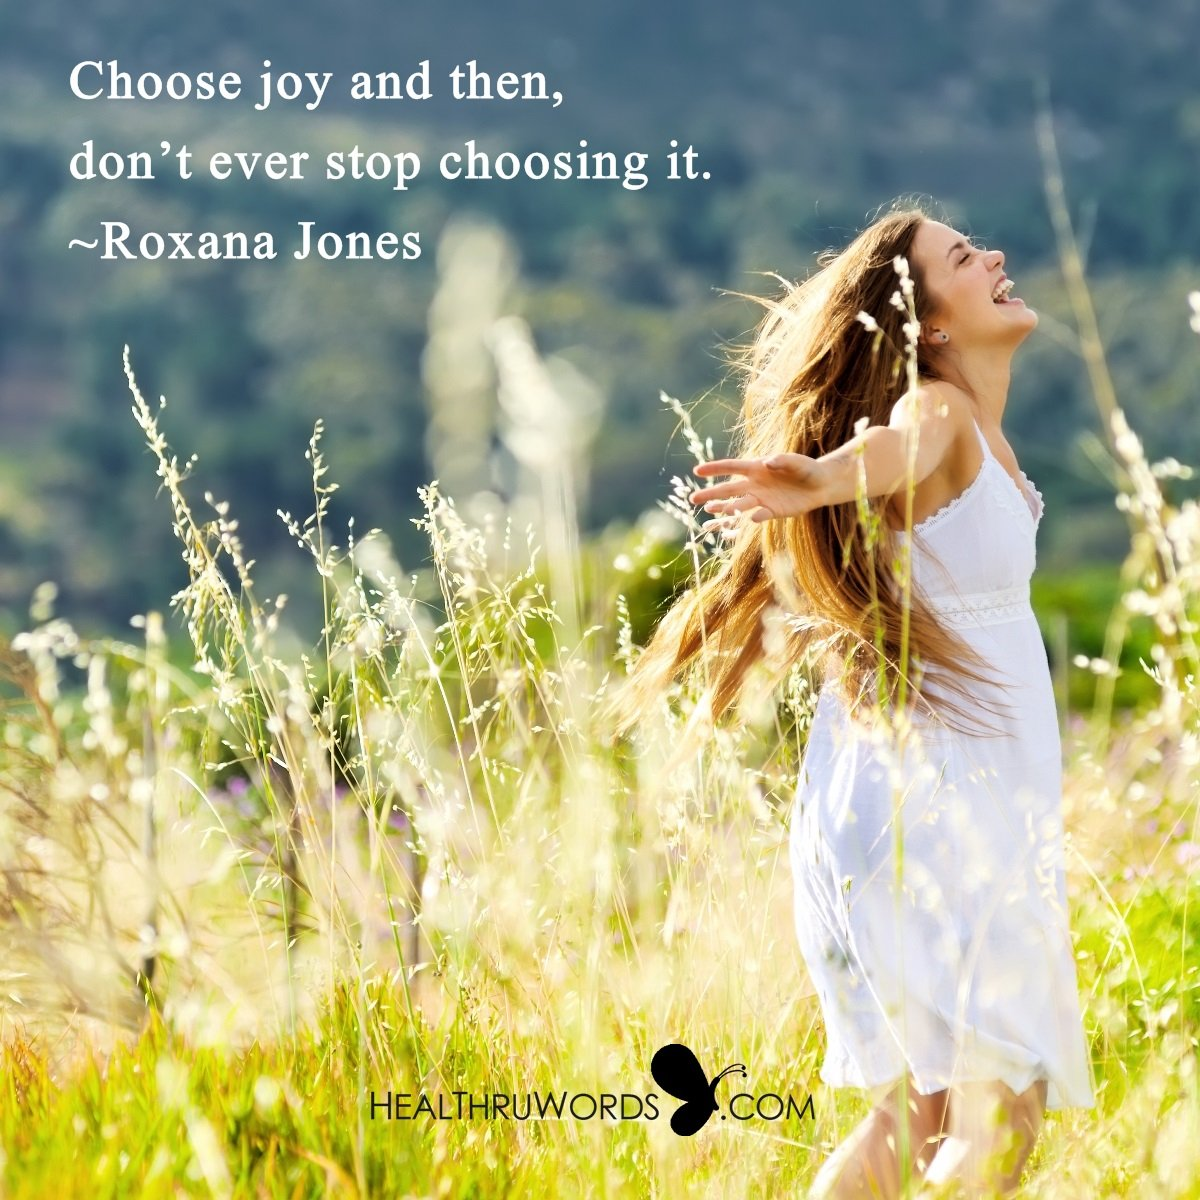 Inspirational Image: The Choice of Joy